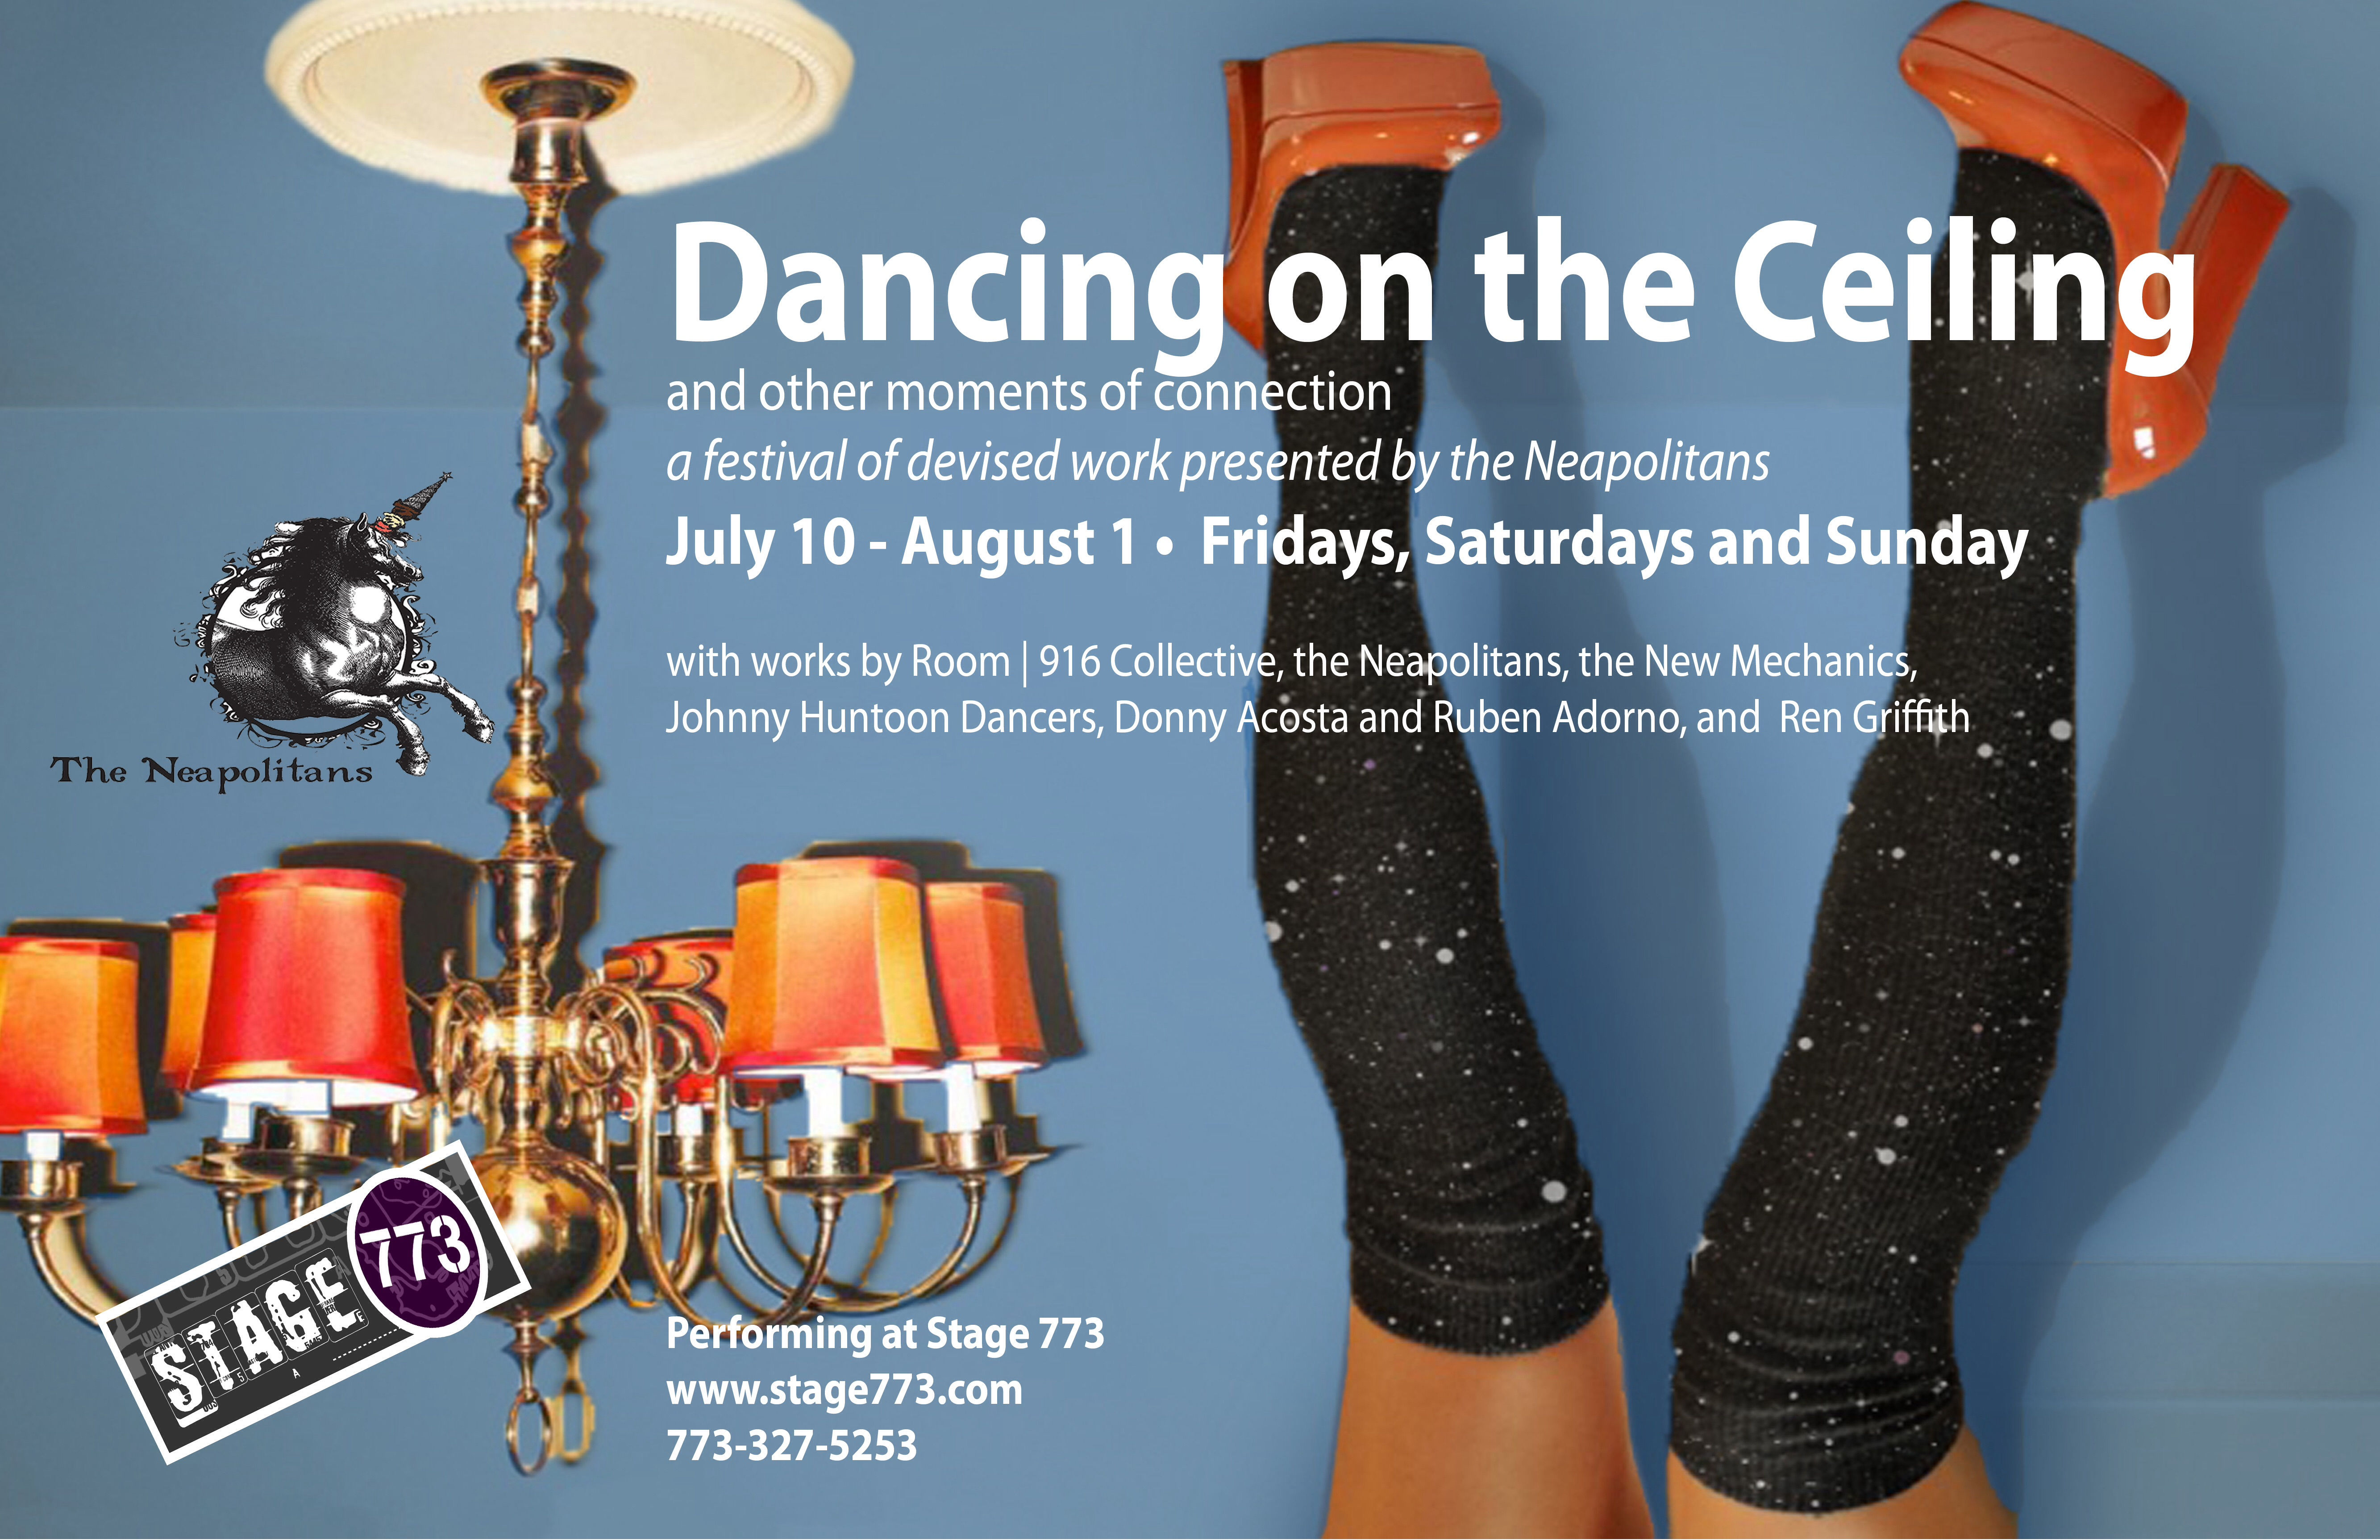 Awesome U0027Dancing On The Ceilingu0027 Festival Features New Work By Columbia College  Chicago Theatre And Dance Alumni, Students, And Faculty July 10 Aug. 1 At  Stage 773